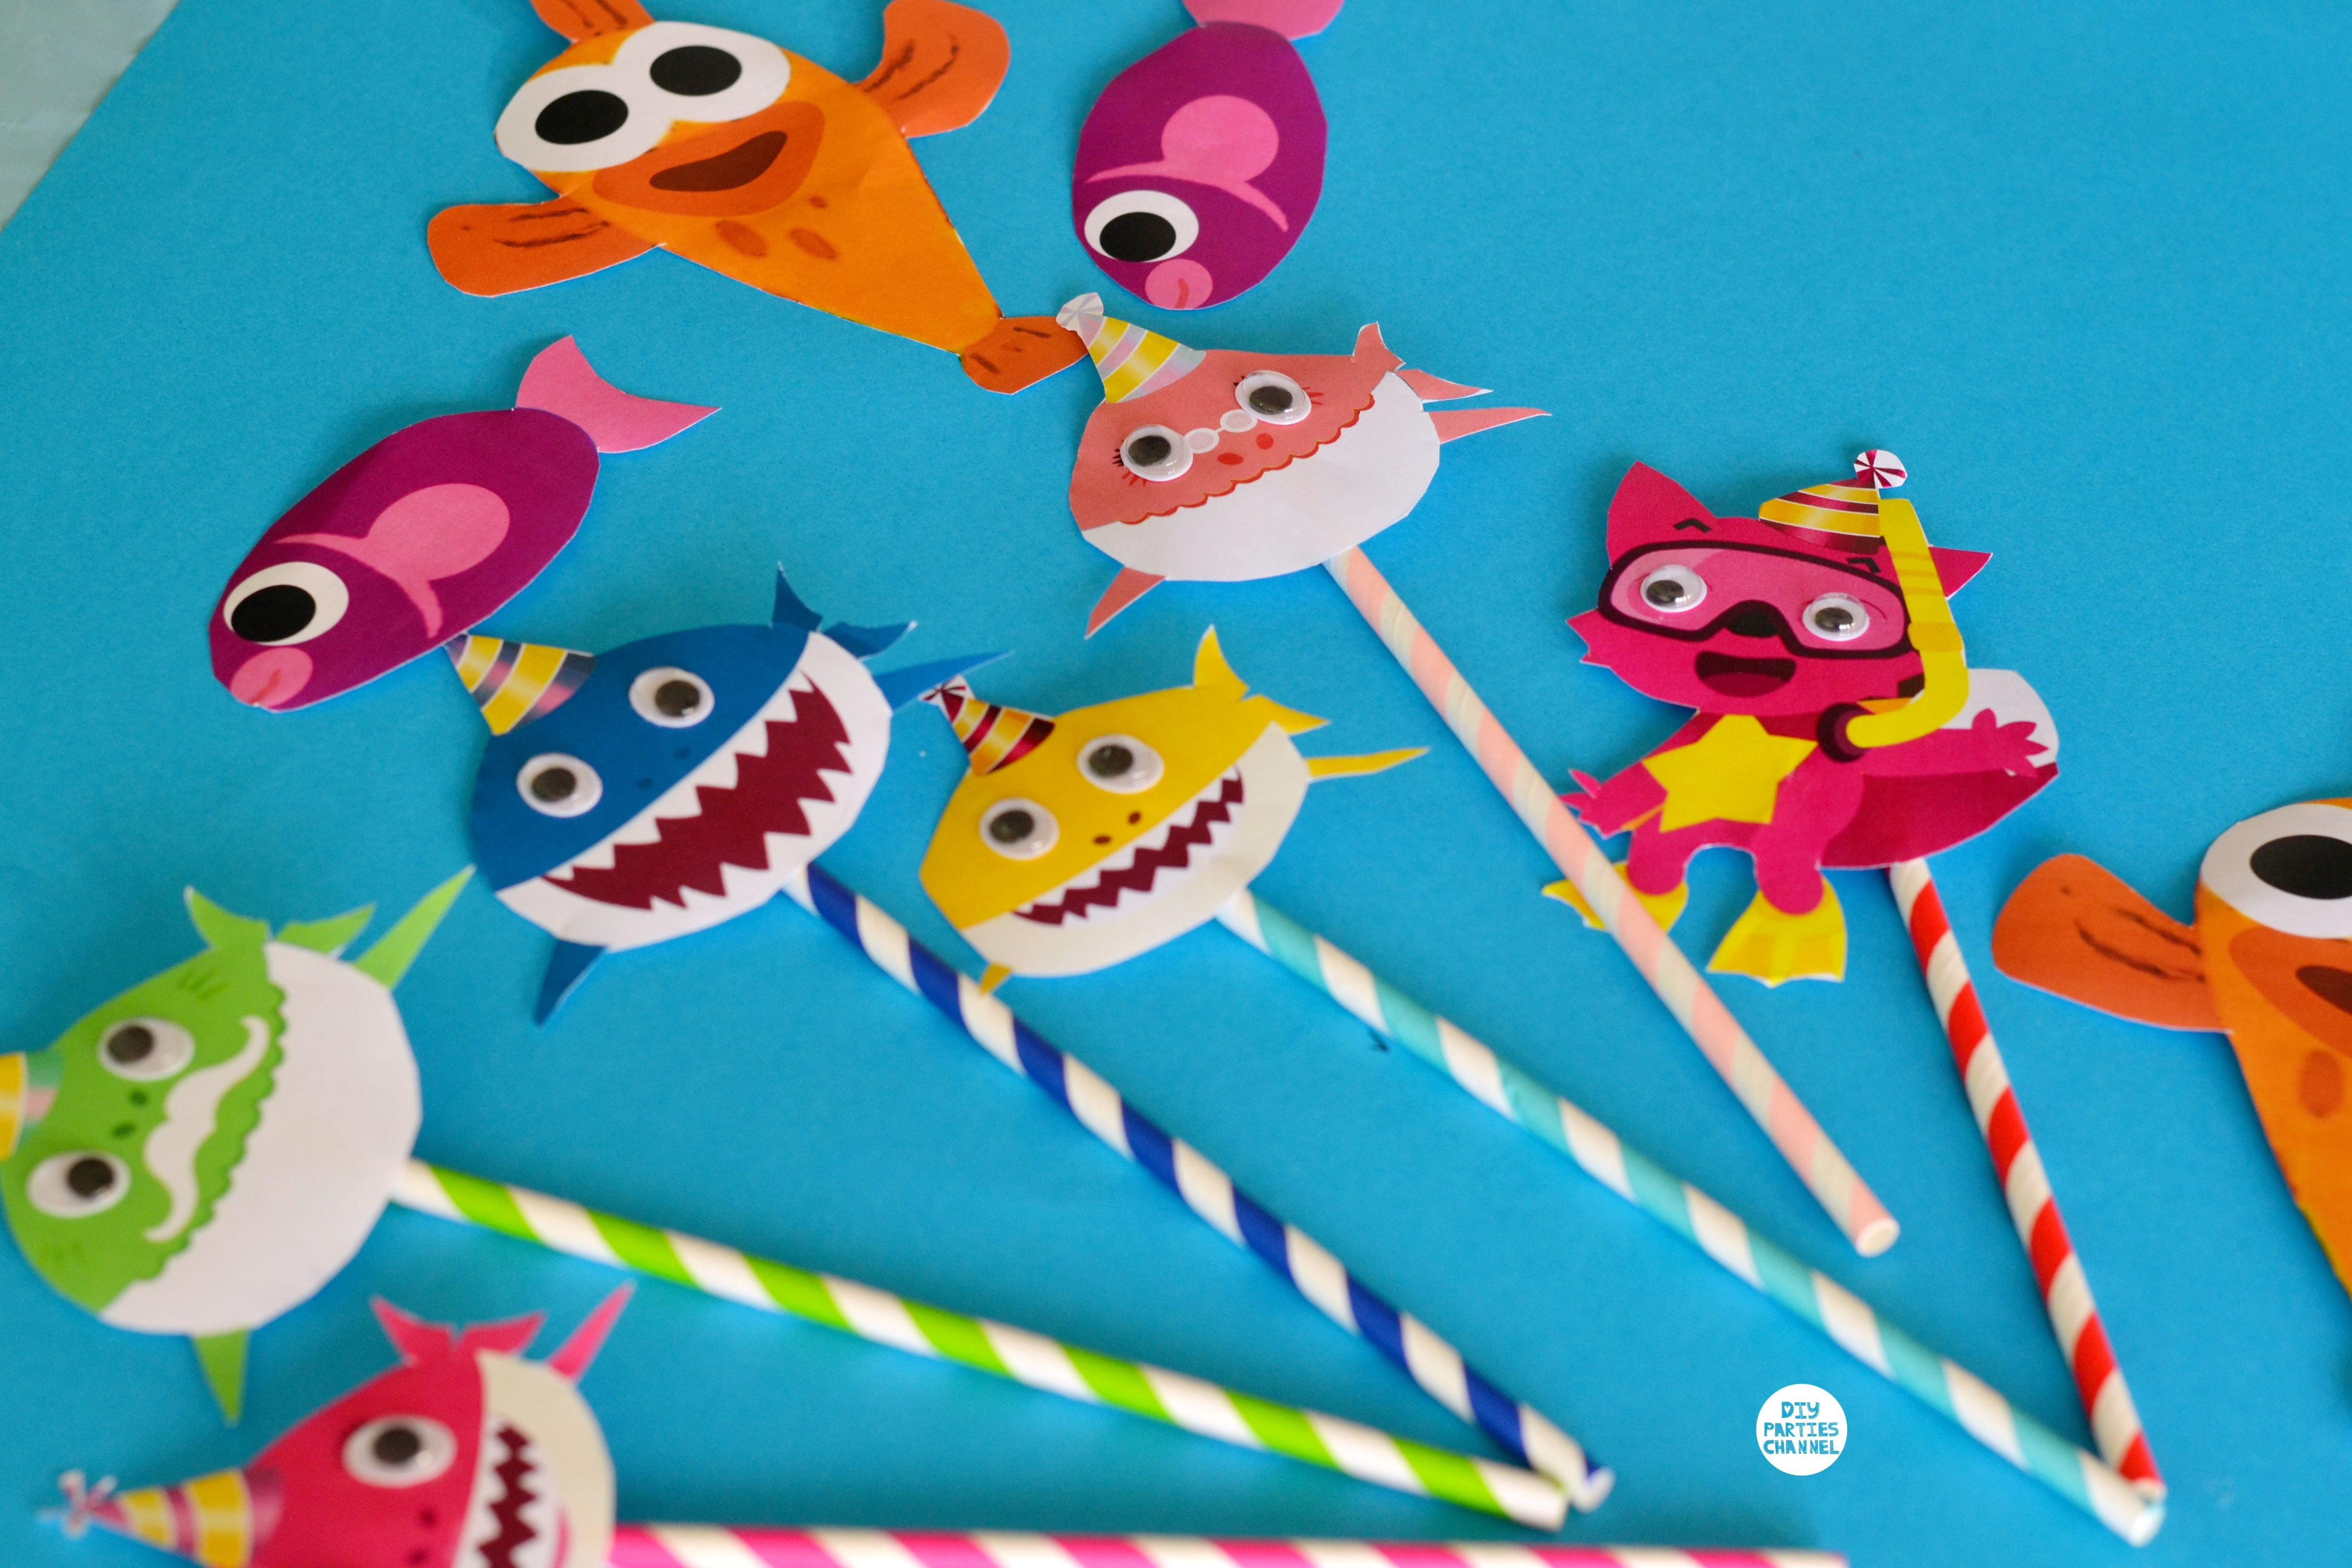 Diy Baby Shark Song Party Decoration Decor Crafts Under The Sea Kids Party Ideas Pinkfong D Baby Boy 1st Birthday Party Shark Party Decorations Baby Shark Song